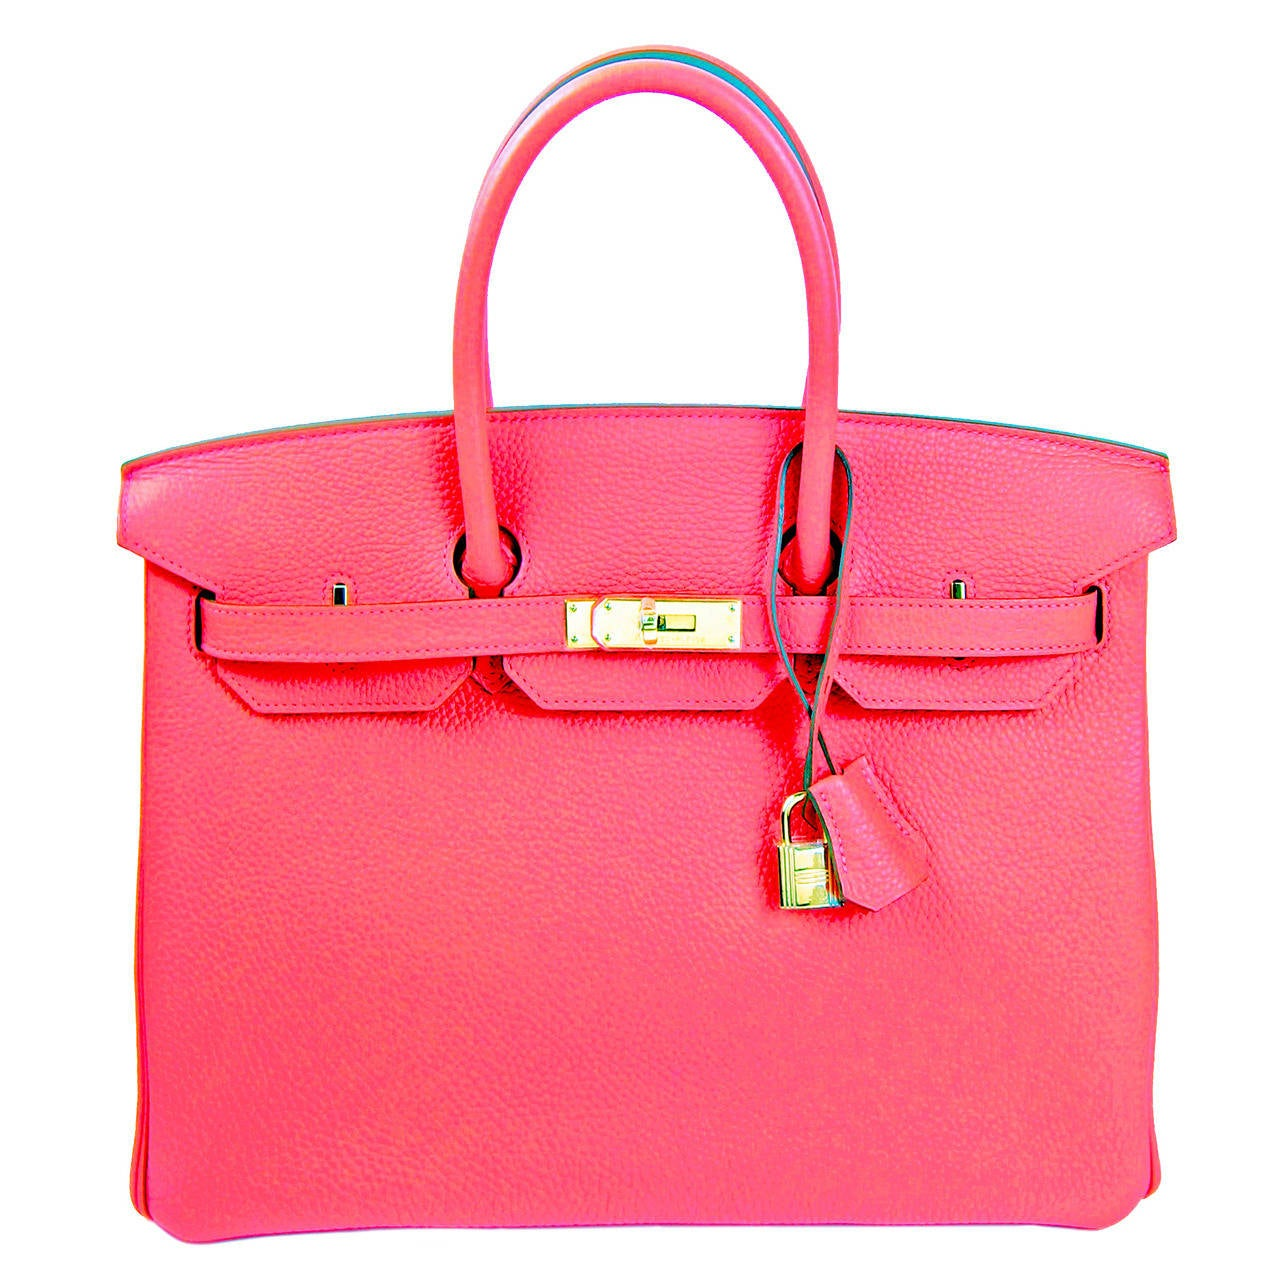 Hermes Rose Jaipur 35cm Birkin Gold Hardware GHW GLOWING 1